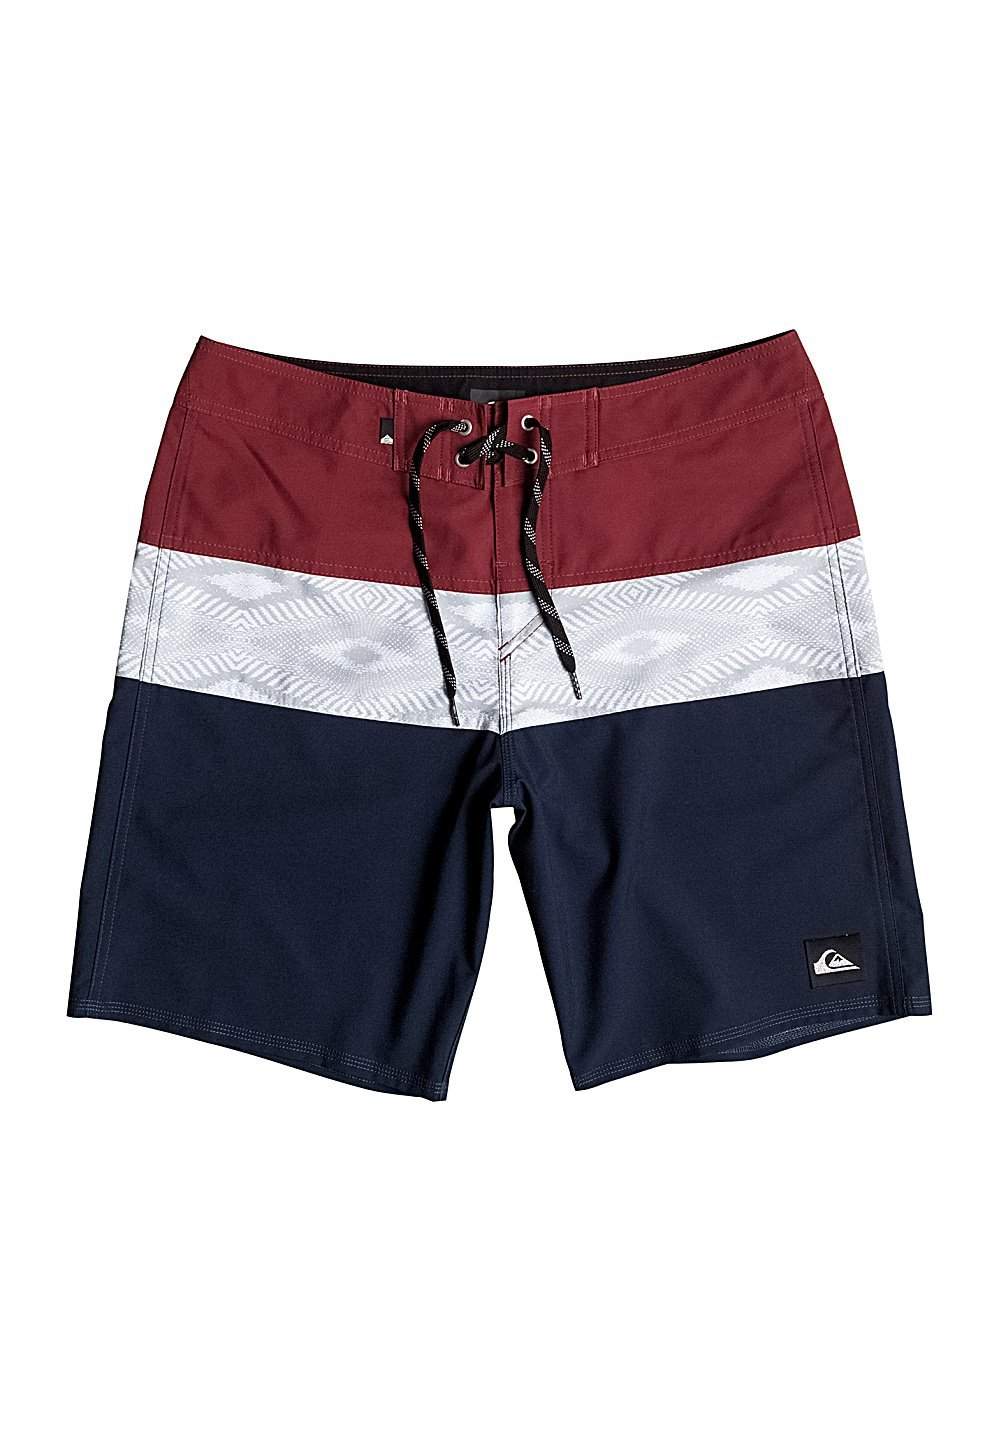 Herren Boardshorts Quiksilver The Panel Vee 19 Boardshorts